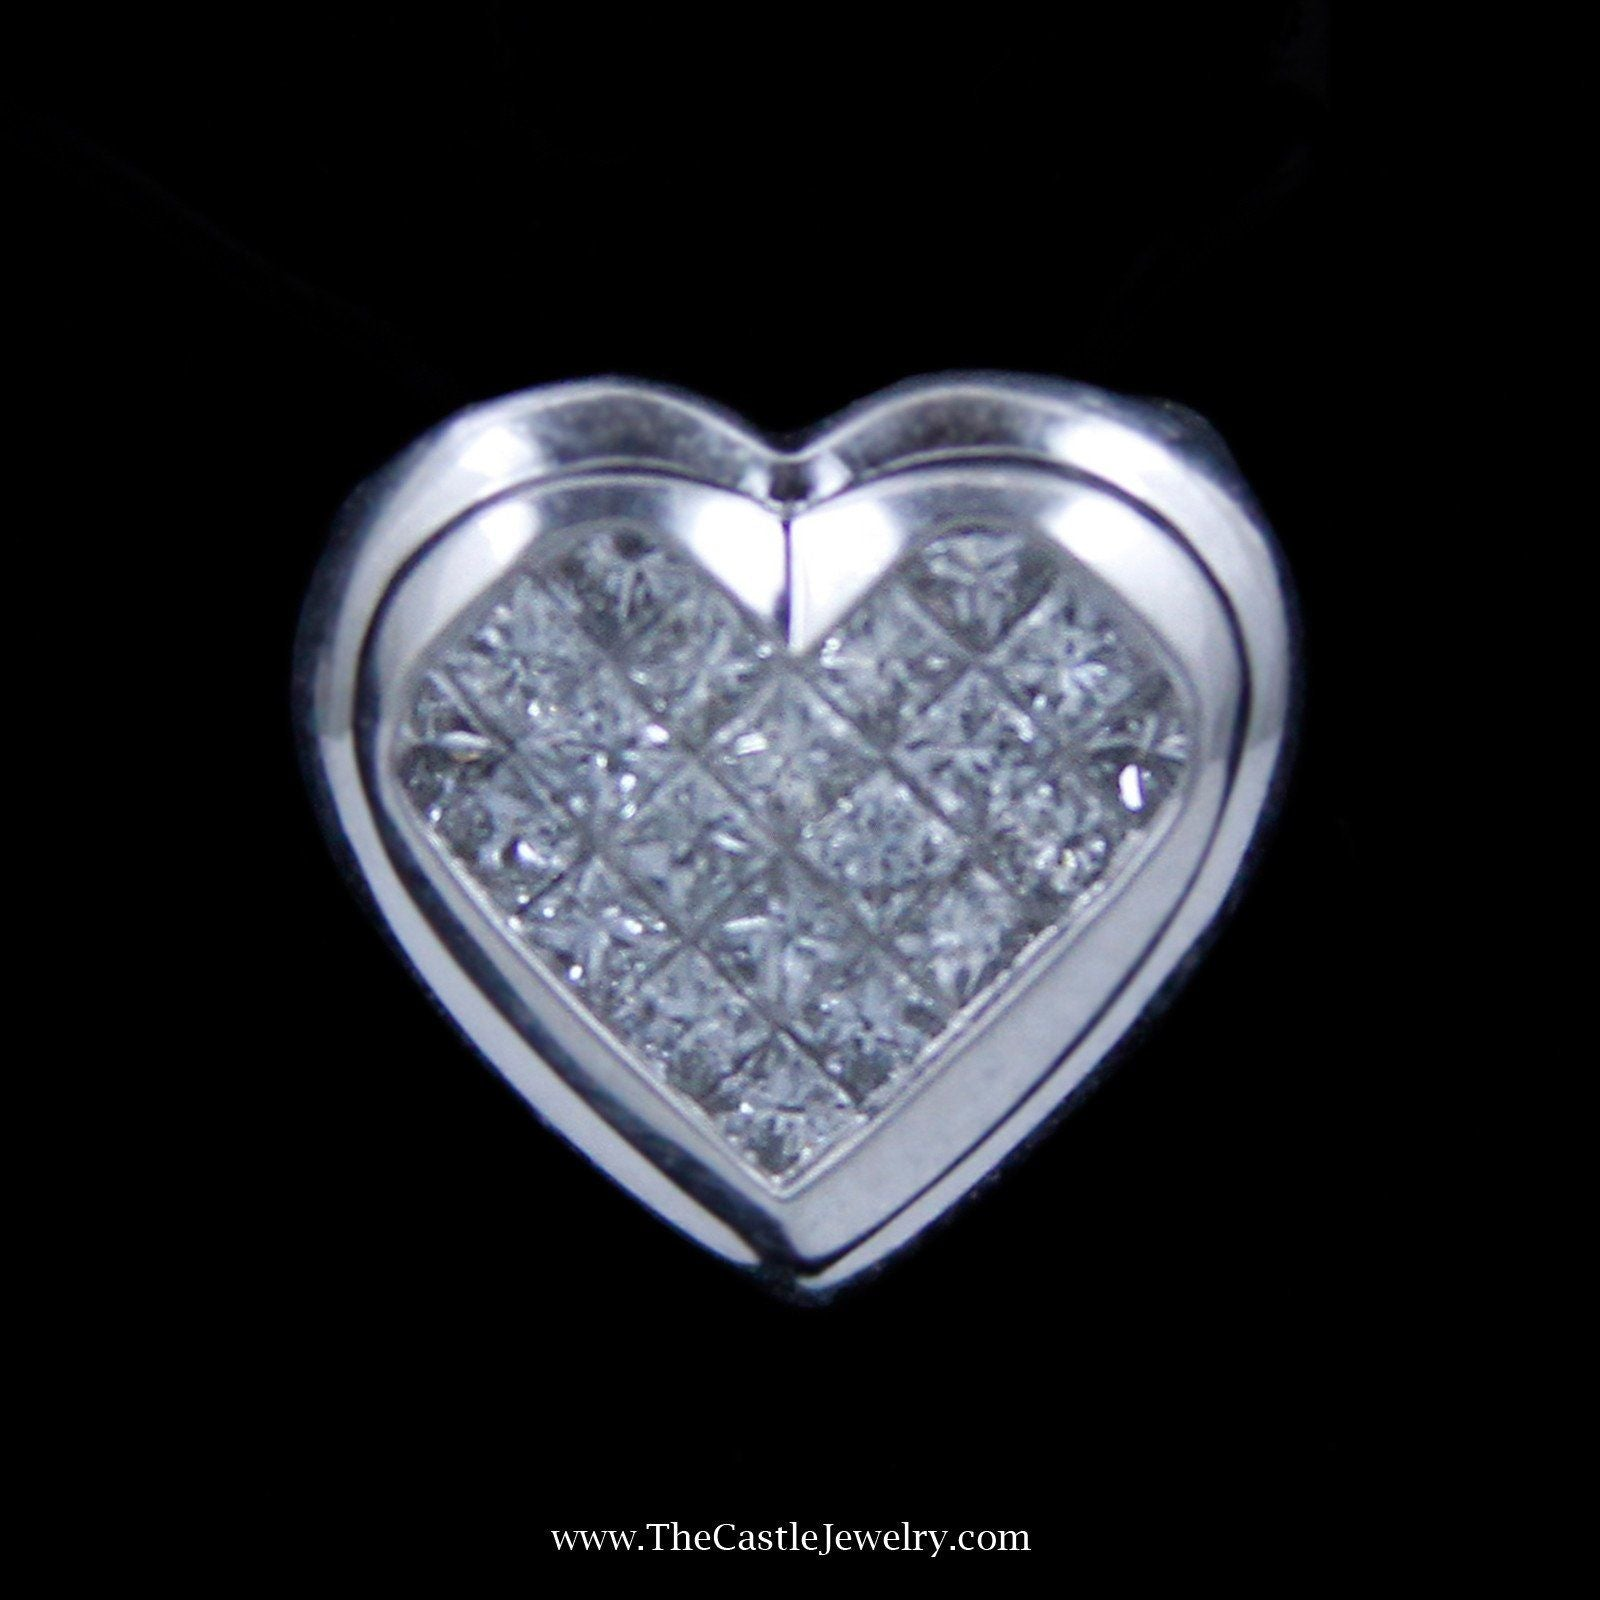 Charming Invisible Set Heart Shaped Diamond Pendant in 14k White Gold